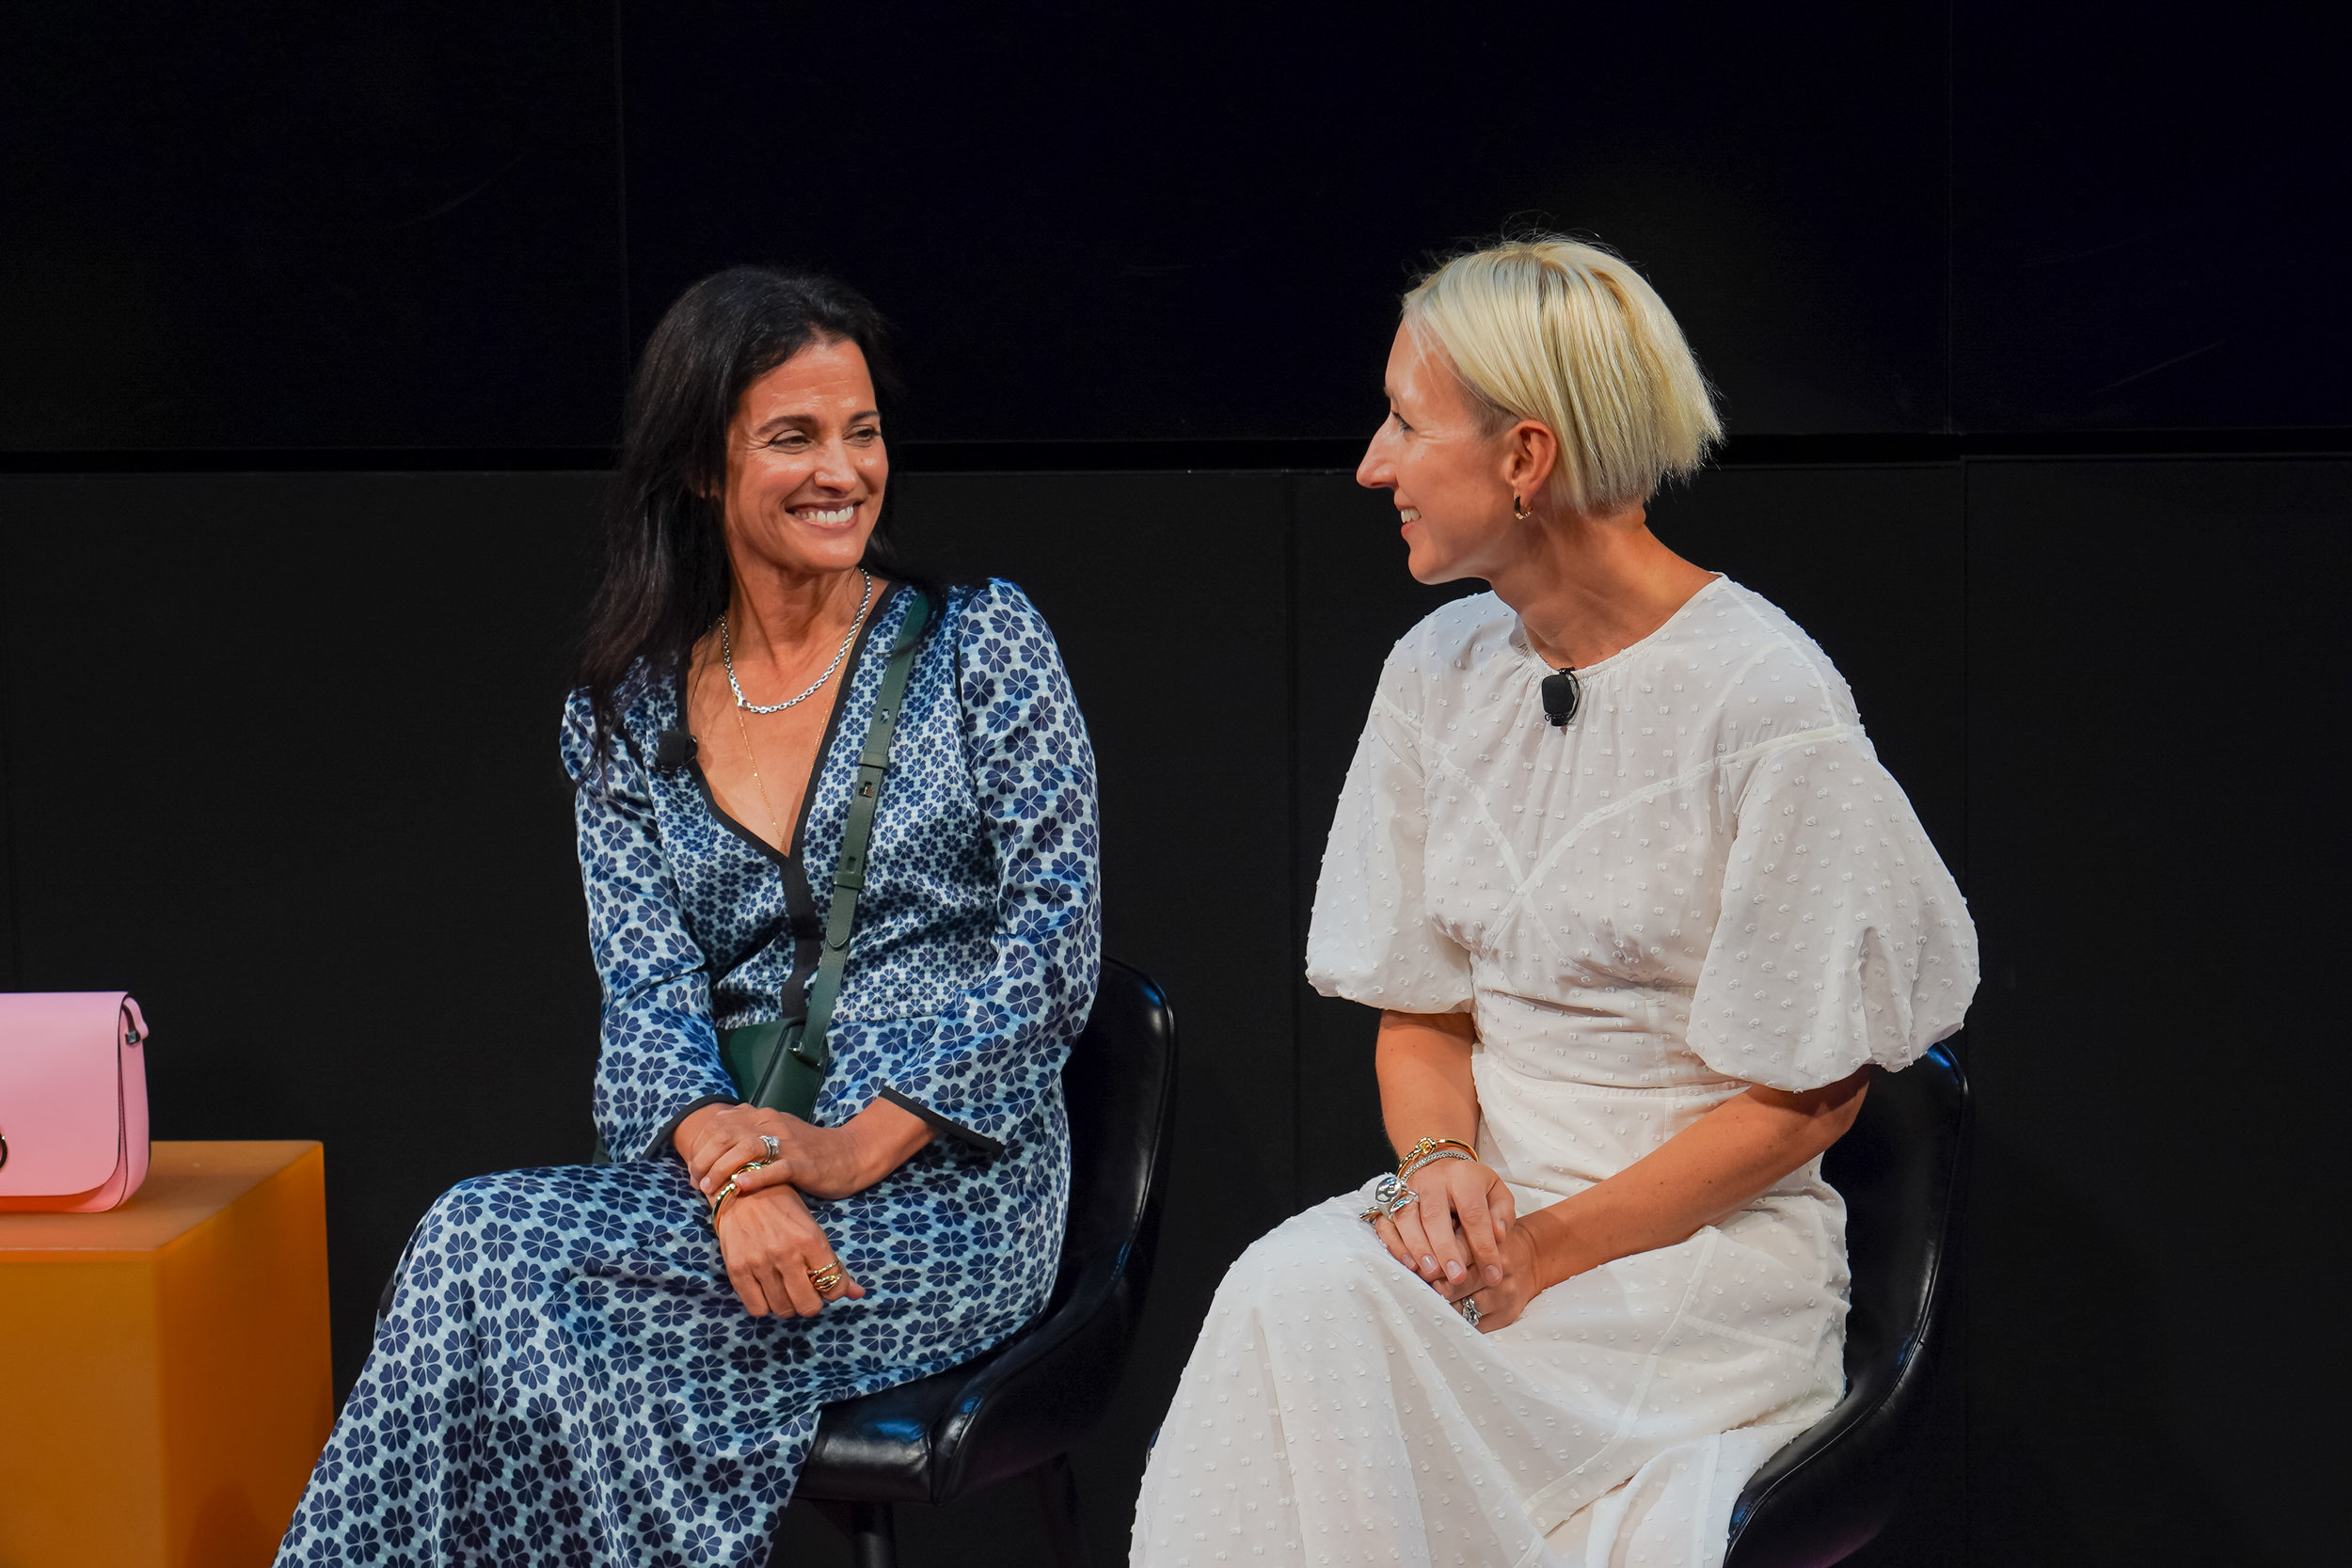 (L-R) Kate Spade's CEO Anna Bakst & Creative Director Nicola Glass together